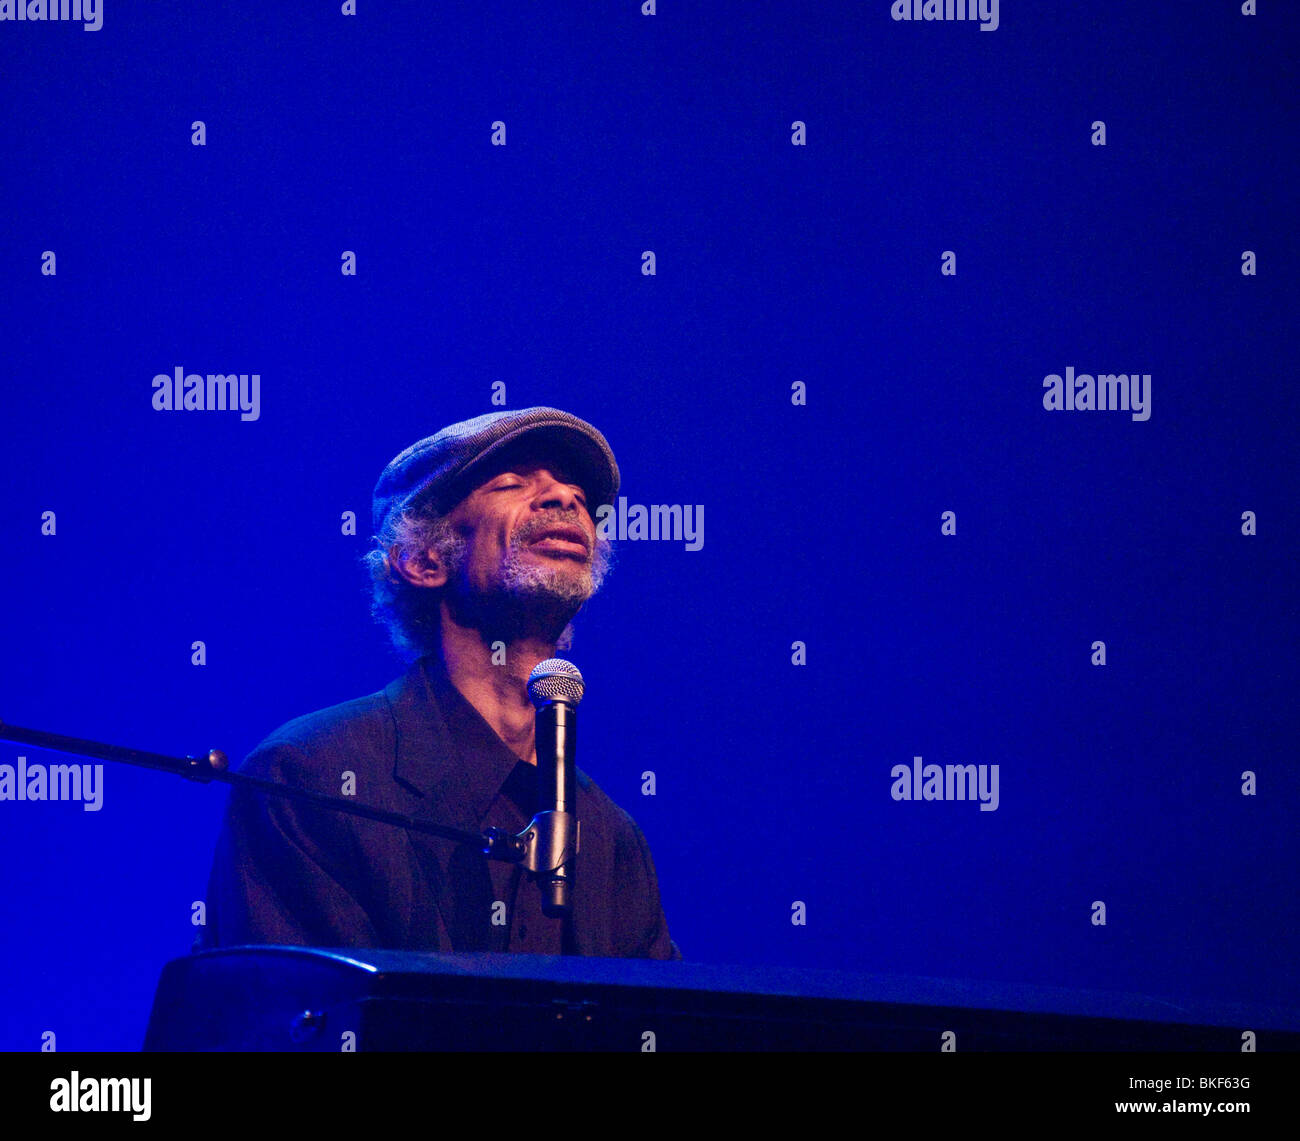 Gil Scott-Heron at The Royal Festival Hall in London - Stock Image